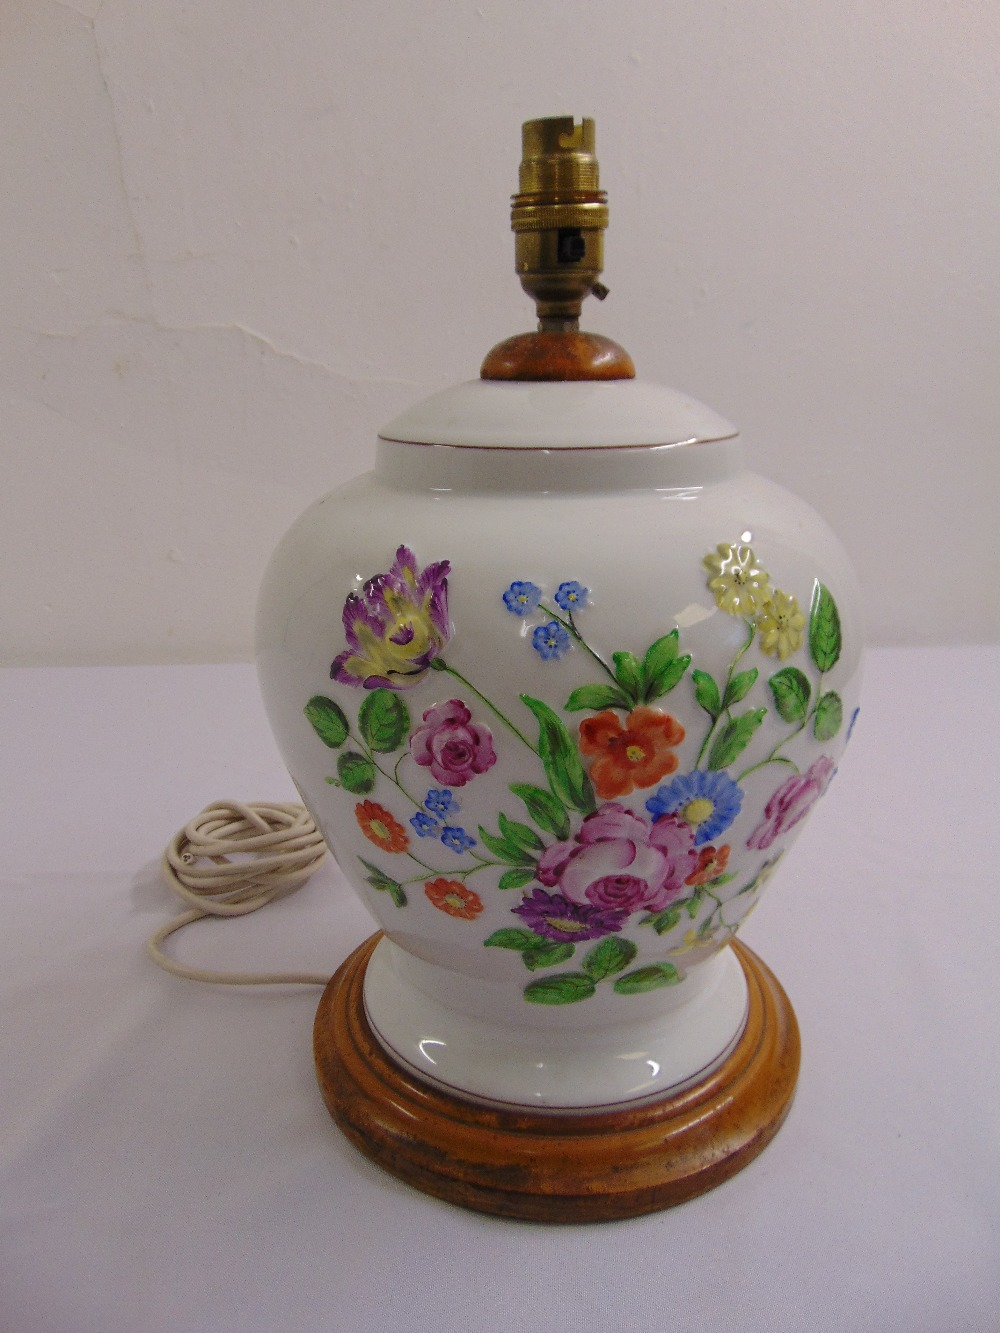 Lot 41 - A Herend baluster form porcelain lamp base decorated with flowers and leaves on turned wooden base